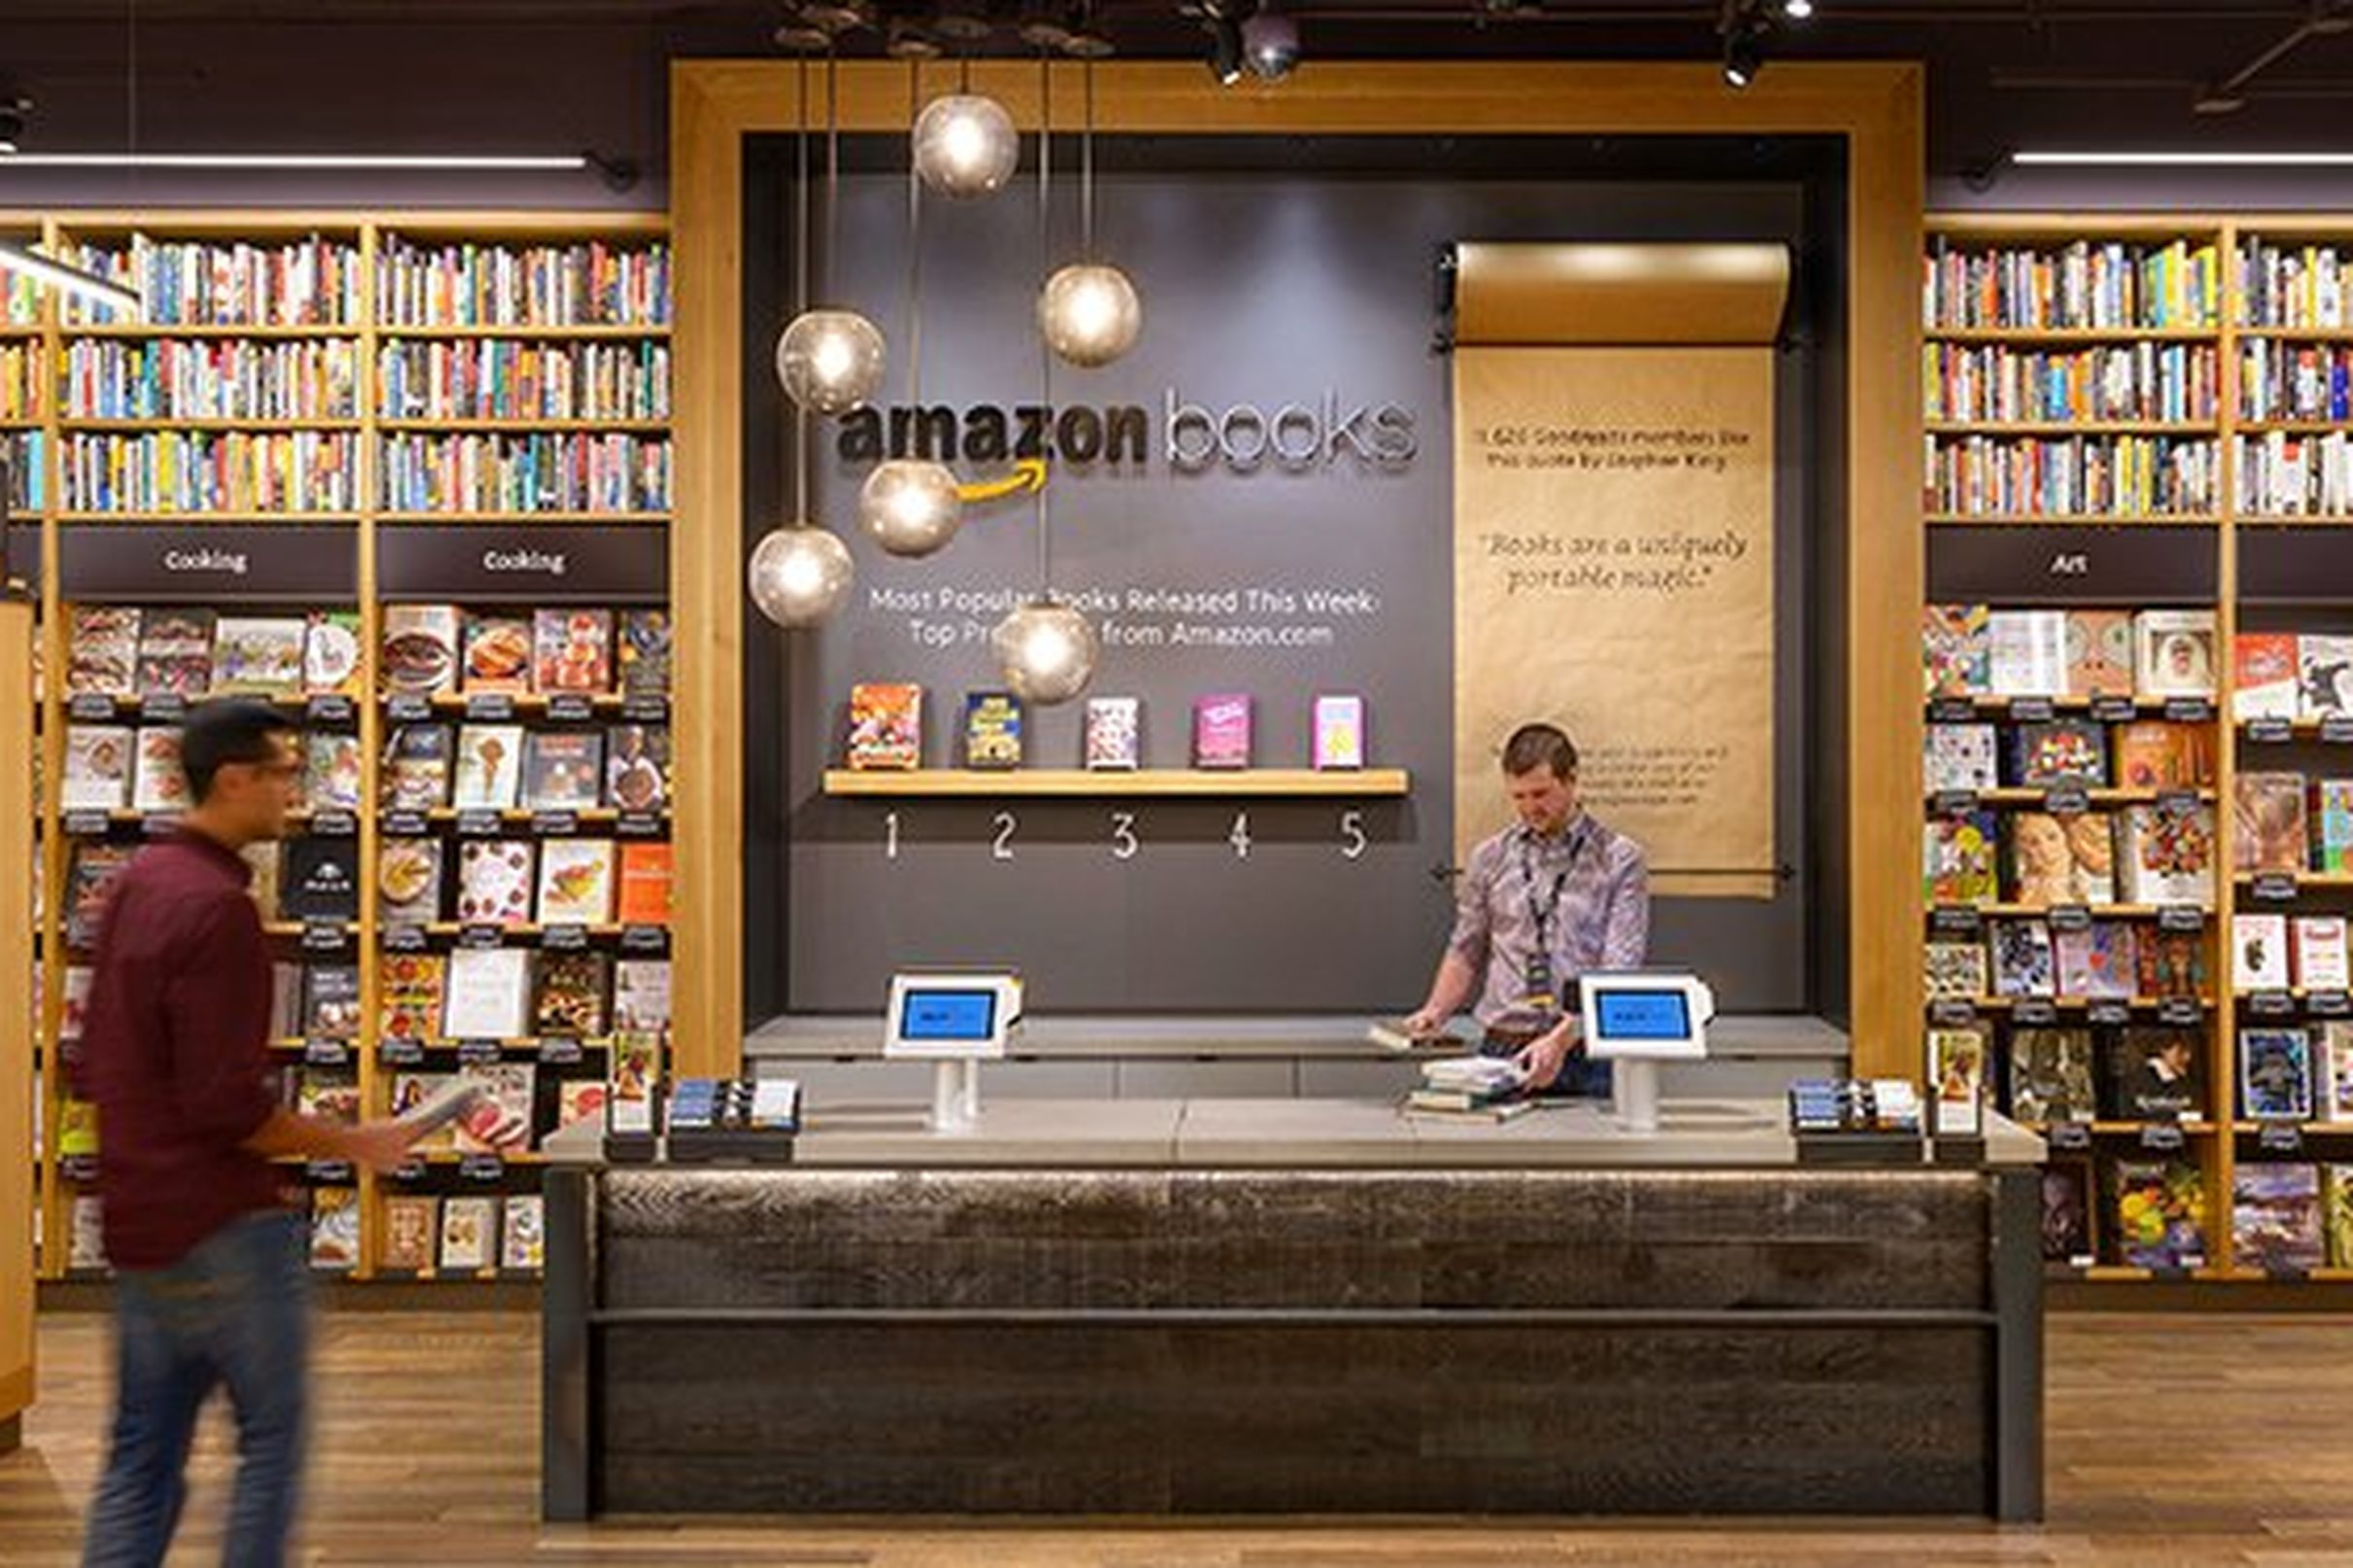 Amazon's Second Bay Area Store Will Include a Café Buy